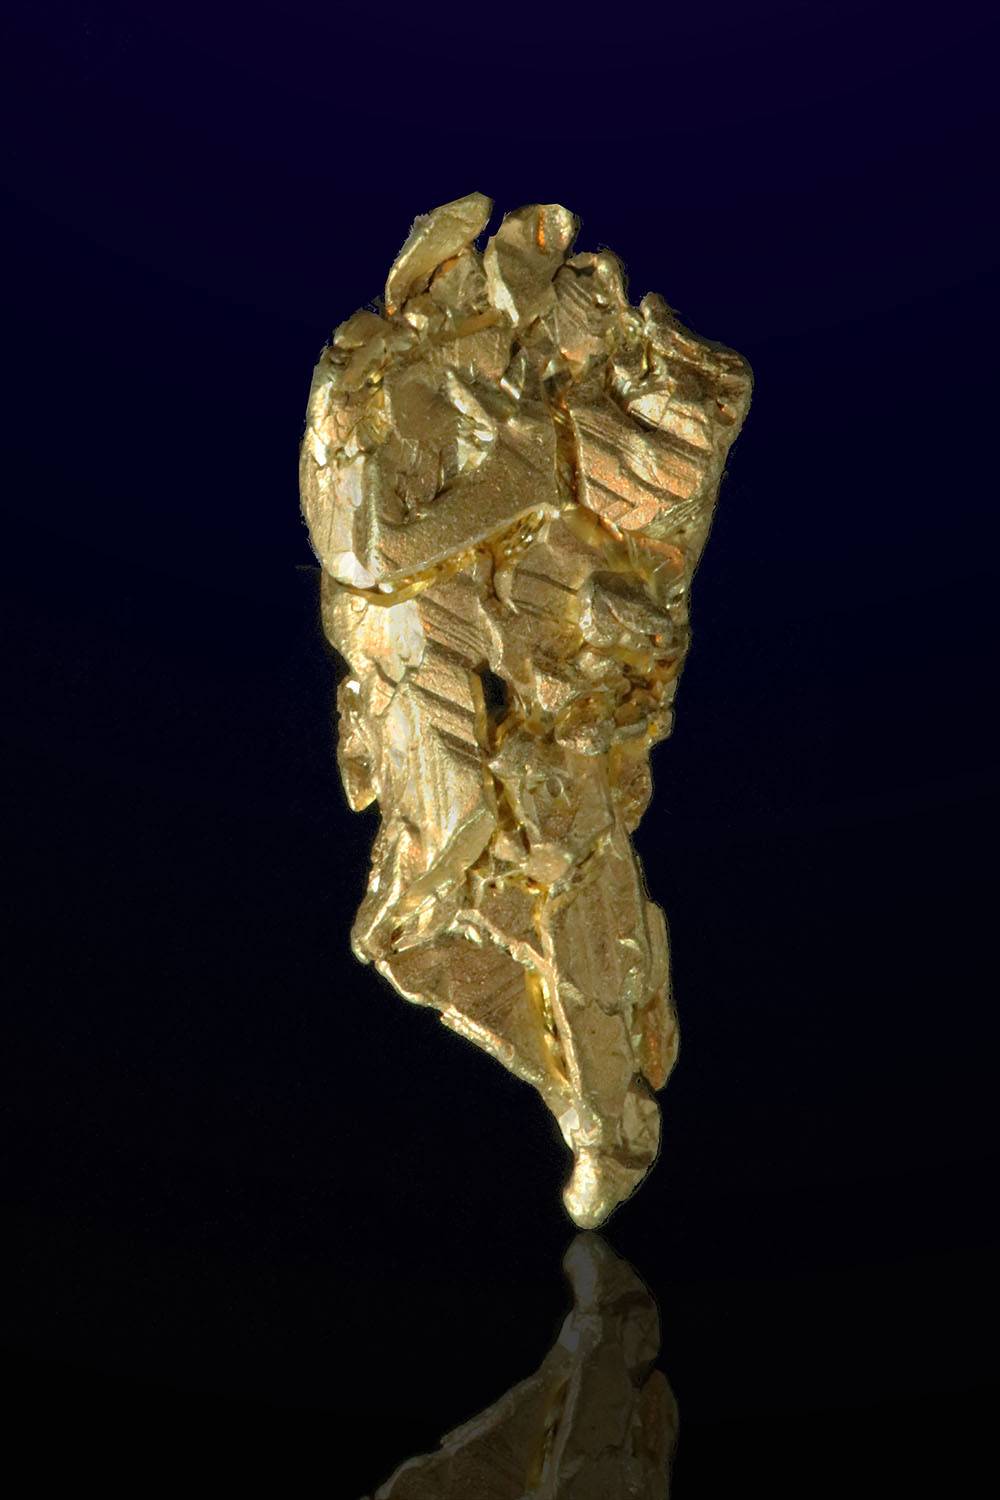 Faceted Tapered Natural Gold Crystal - Mt. Kare, PNG